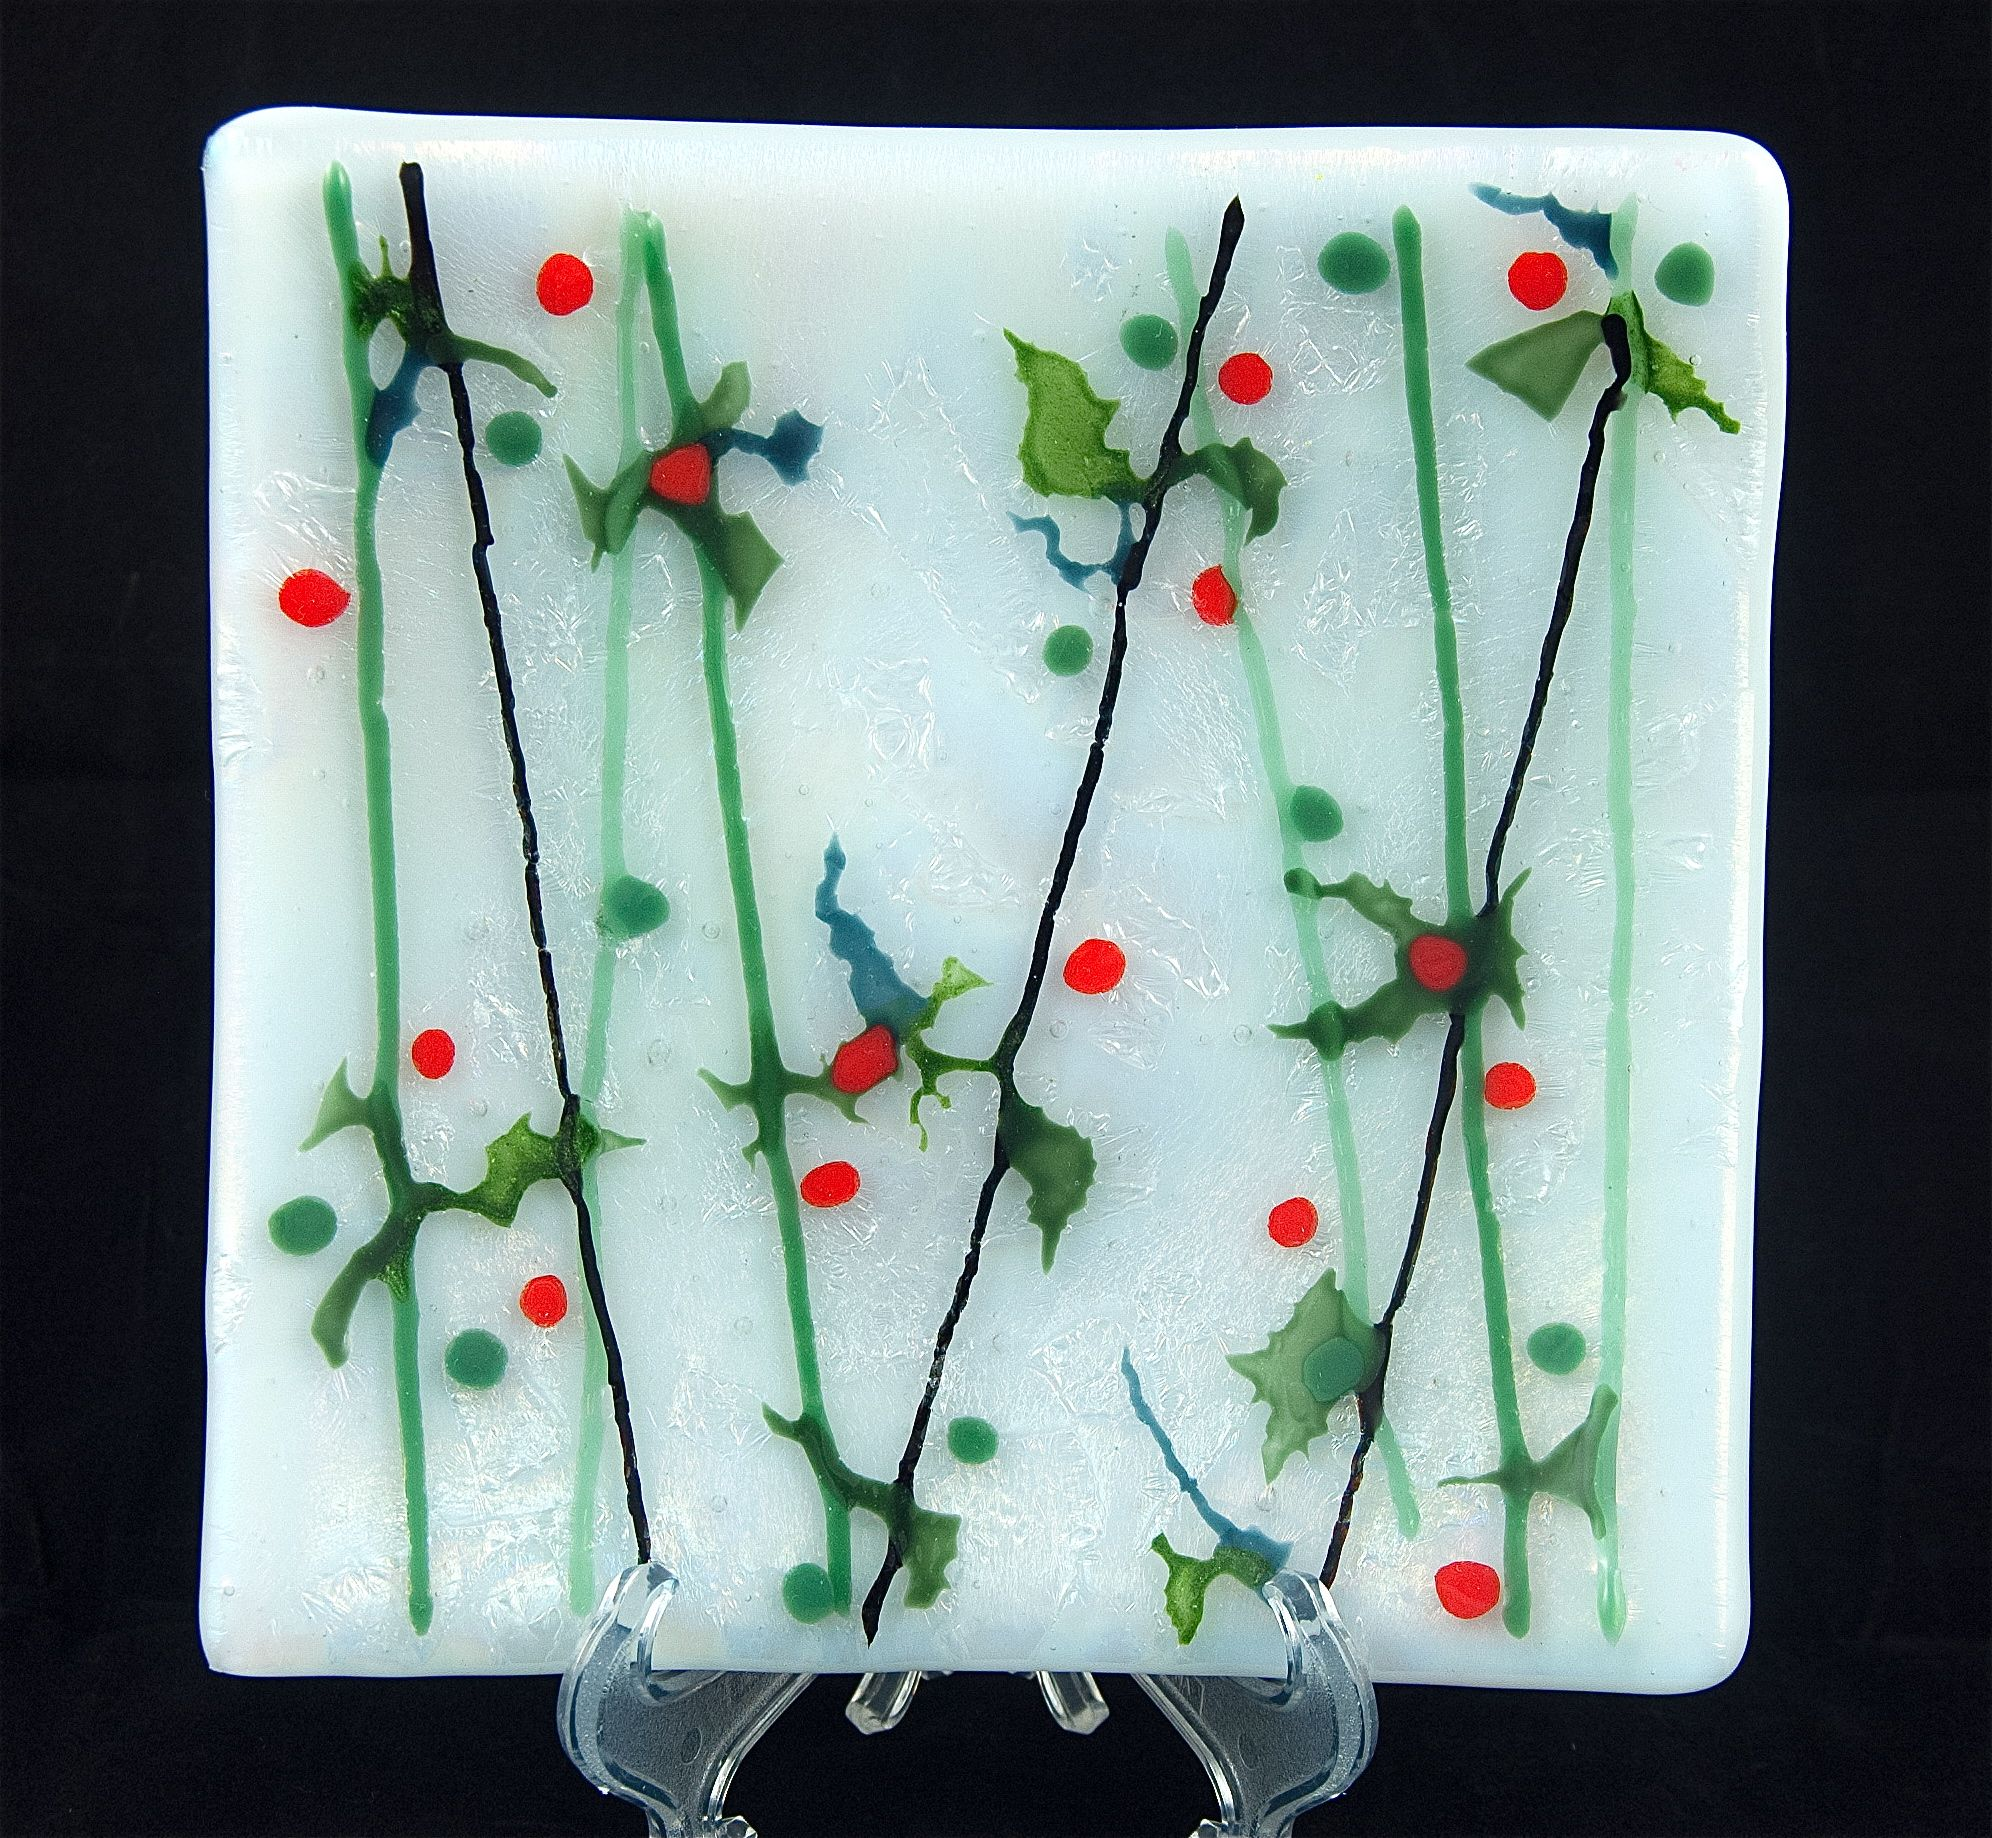 Bamboo Holly Iridescent Medium Square Fused Glass Plate   Anneu0027s Dreams In  Glass